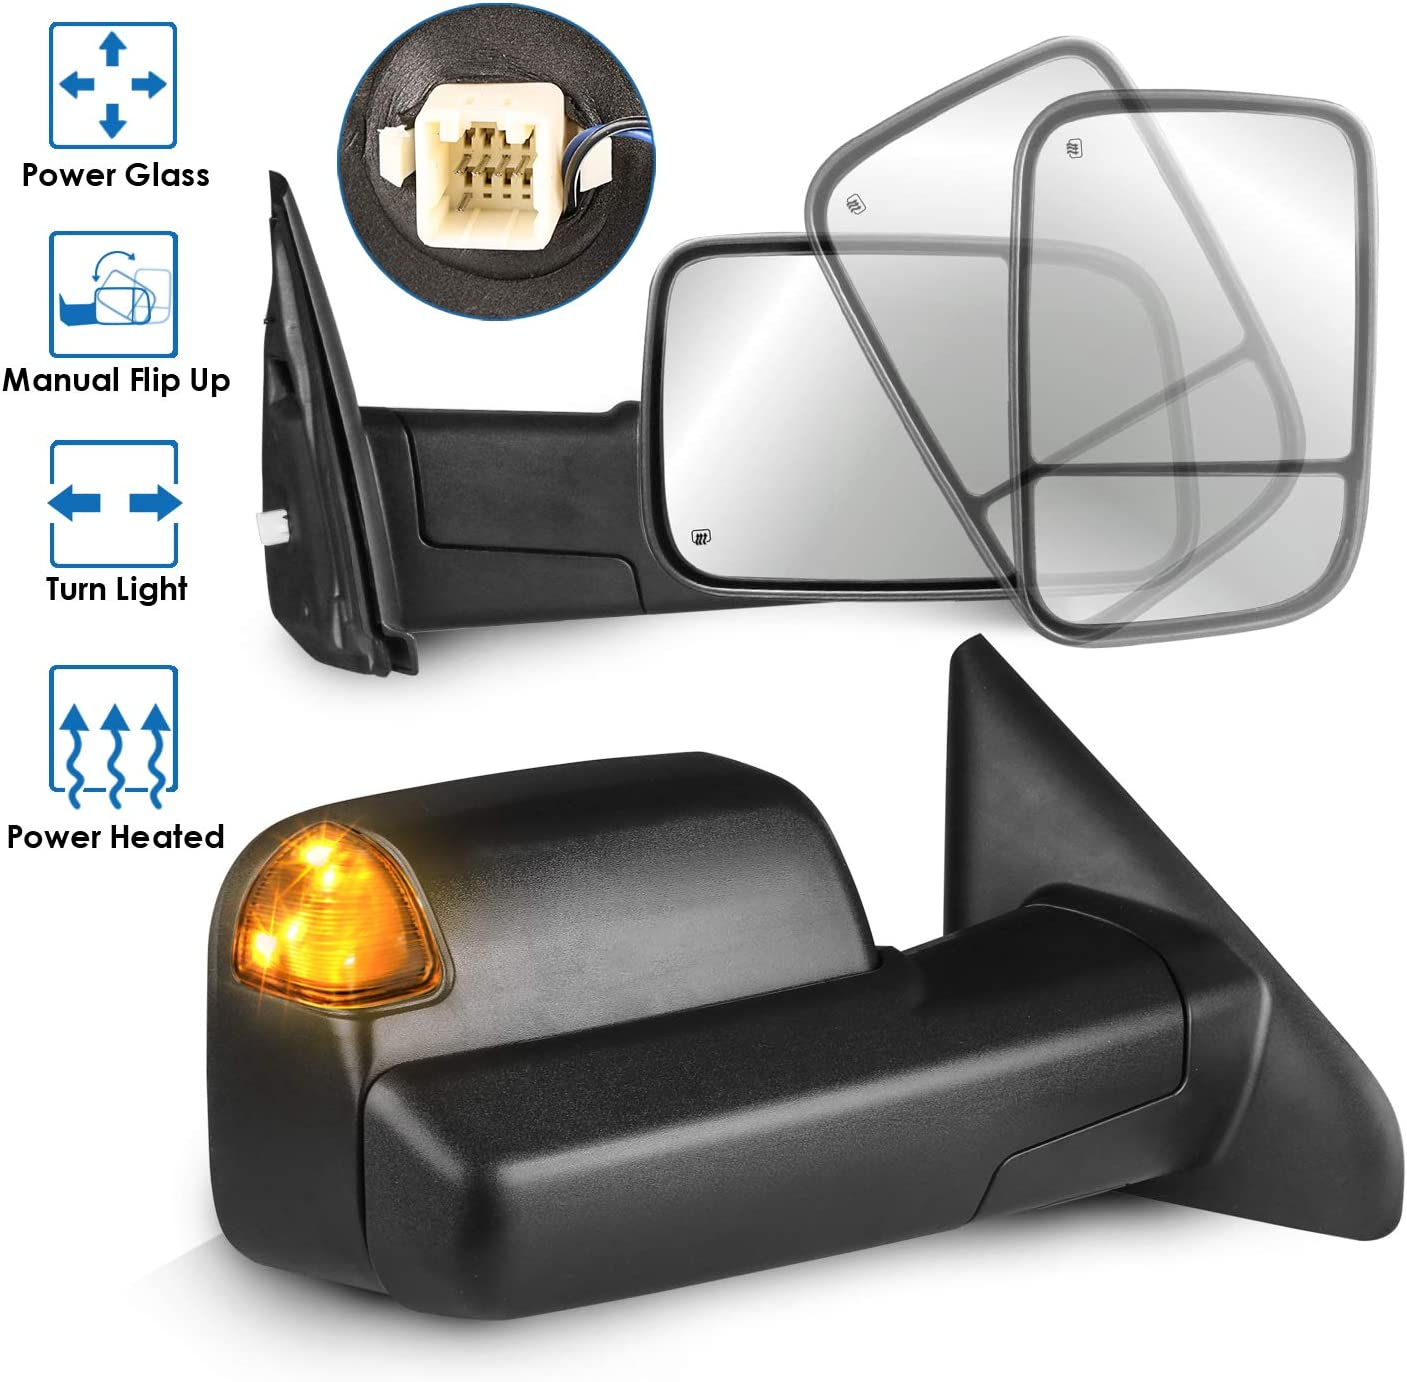 New Turn Signal Switch for Dodge Ram 1500 2002-2009